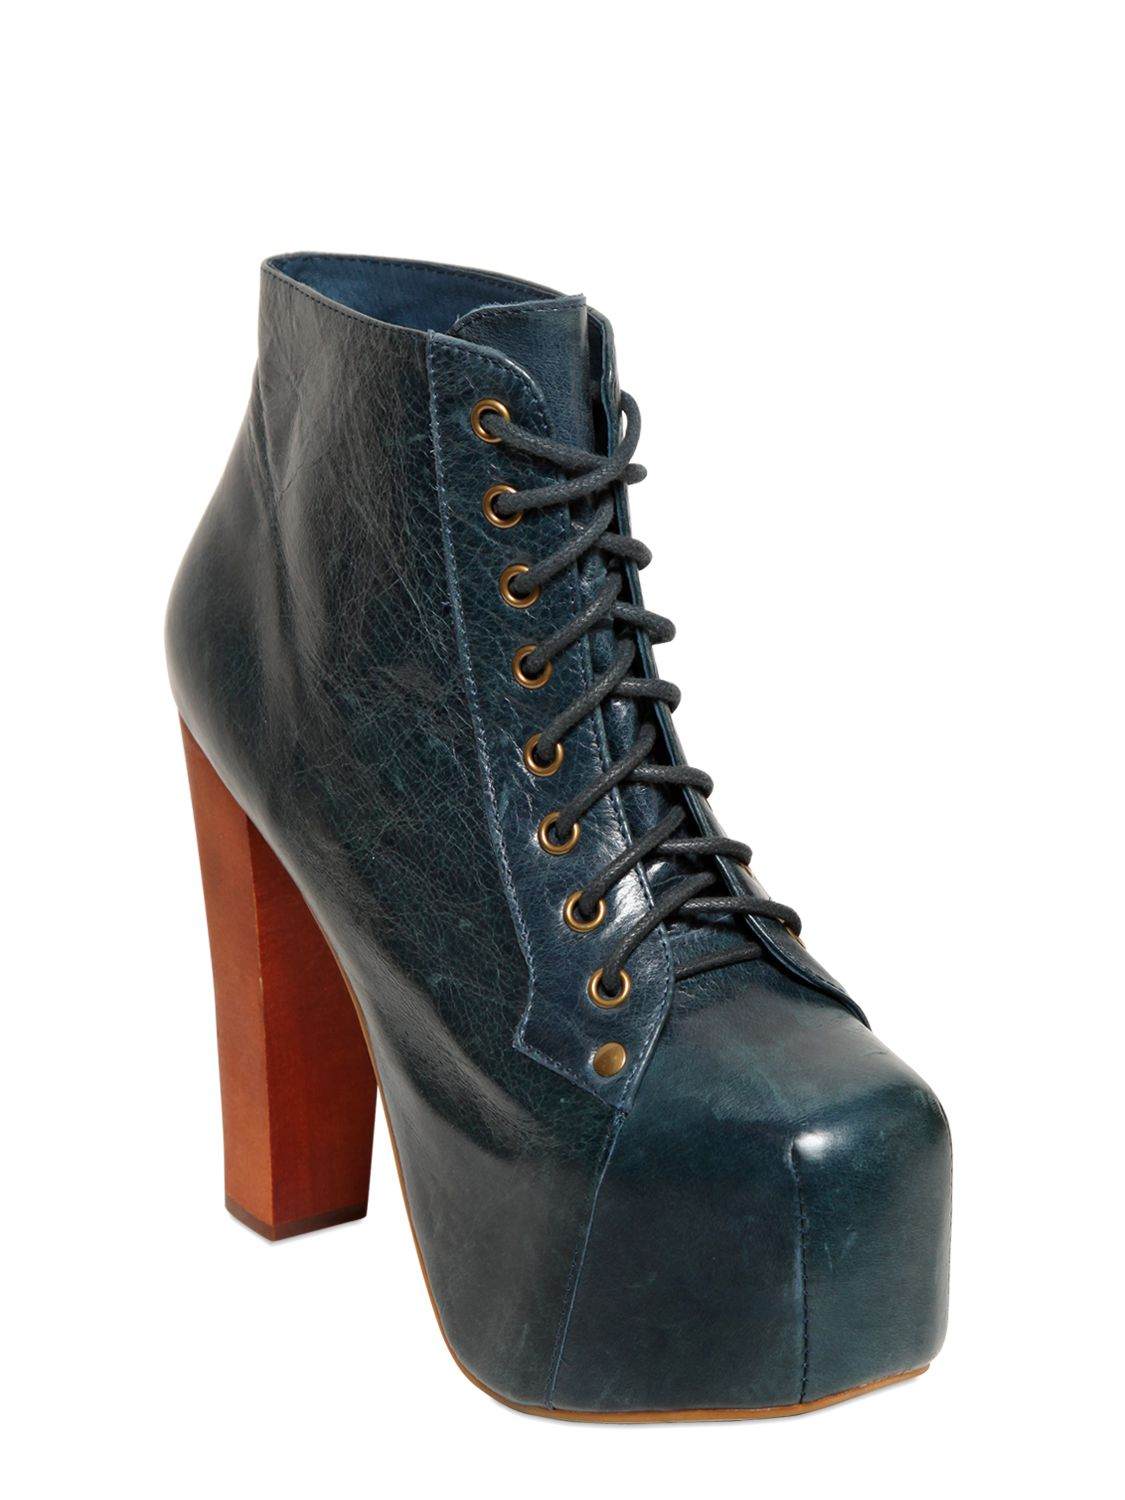 jeffrey campbell 120mm lita distressed leather boots in blue petrol blue lyst. Black Bedroom Furniture Sets. Home Design Ideas